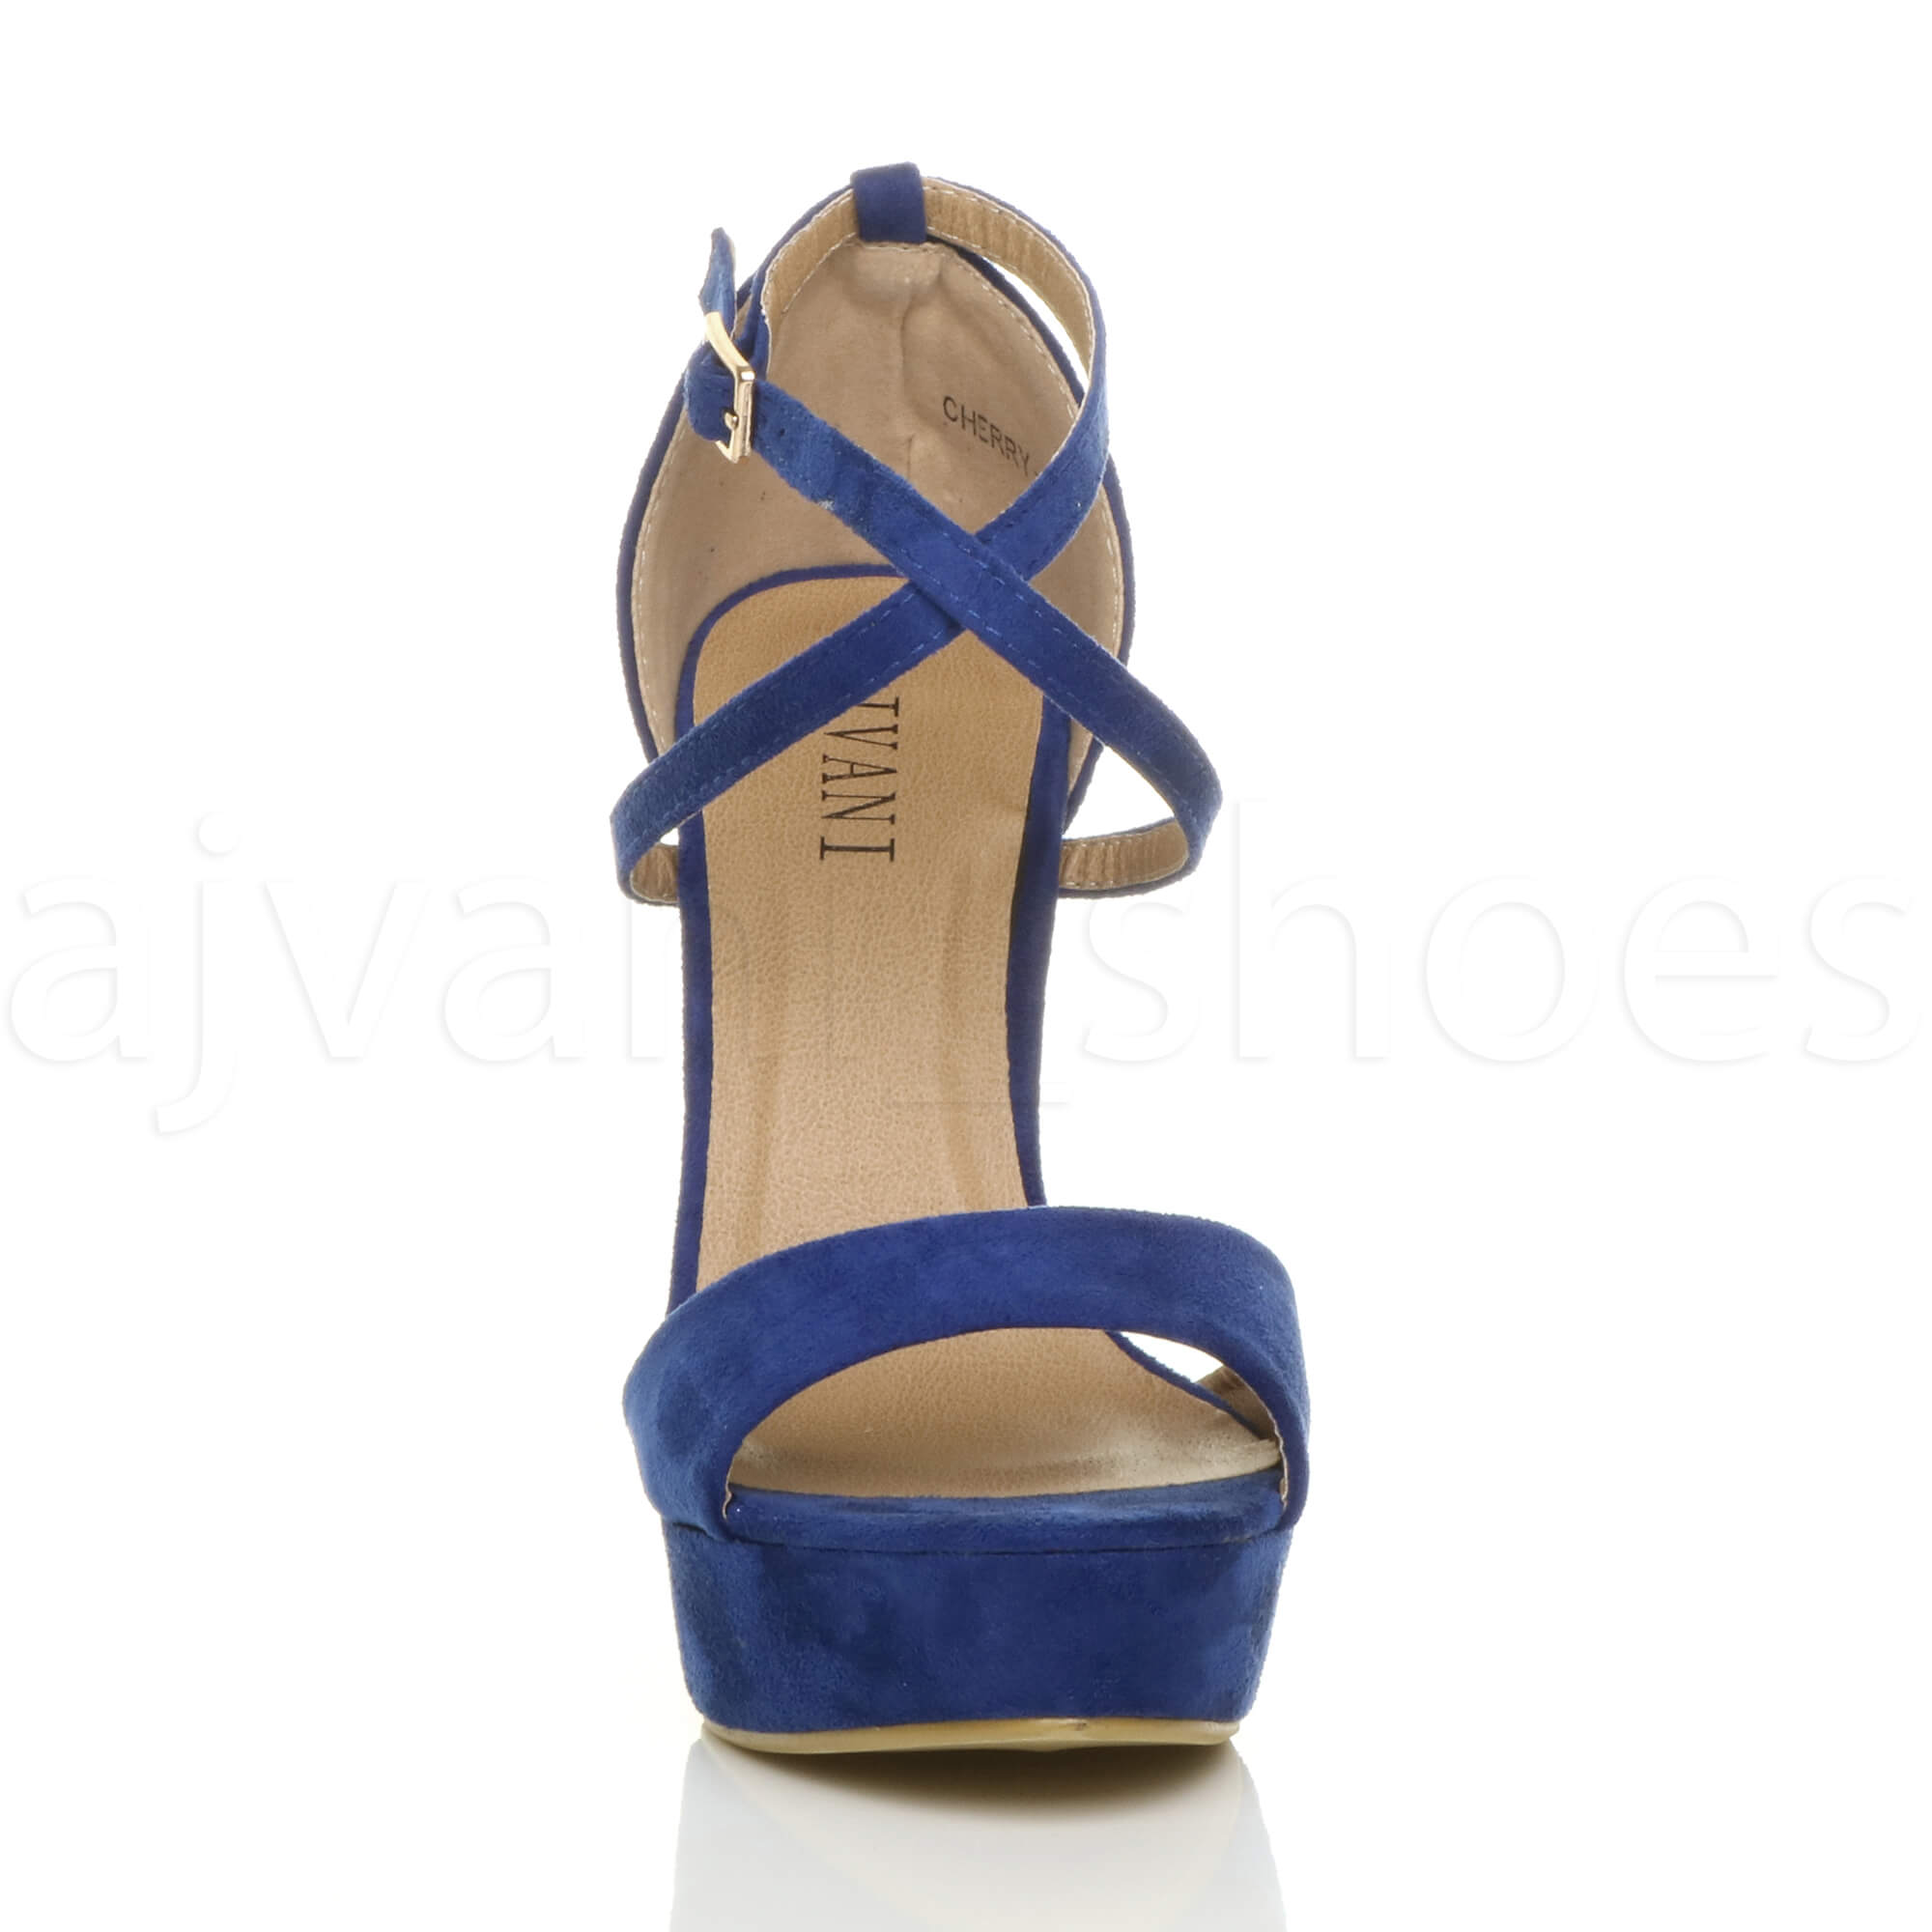 WOMENS-LADIES-PLATFORM-HIGH-HEEL-PEEP-TOE-CROSS-OVER-STRAPPY-SANDALS-SHOES-SIZE thumbnail 35